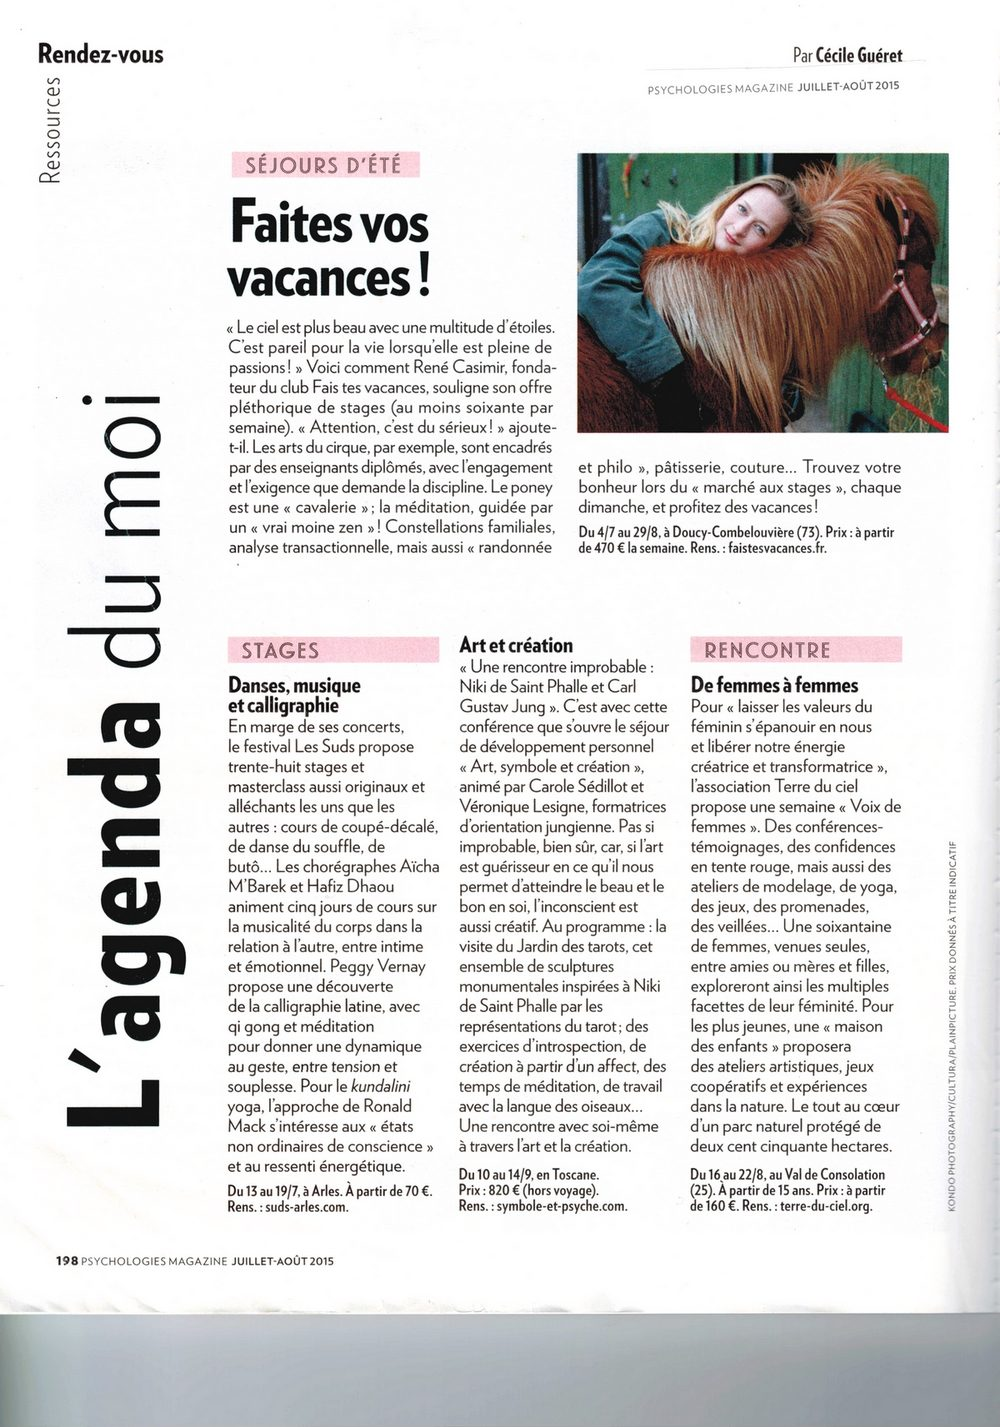 faistesvacances vu par psychologies magazine